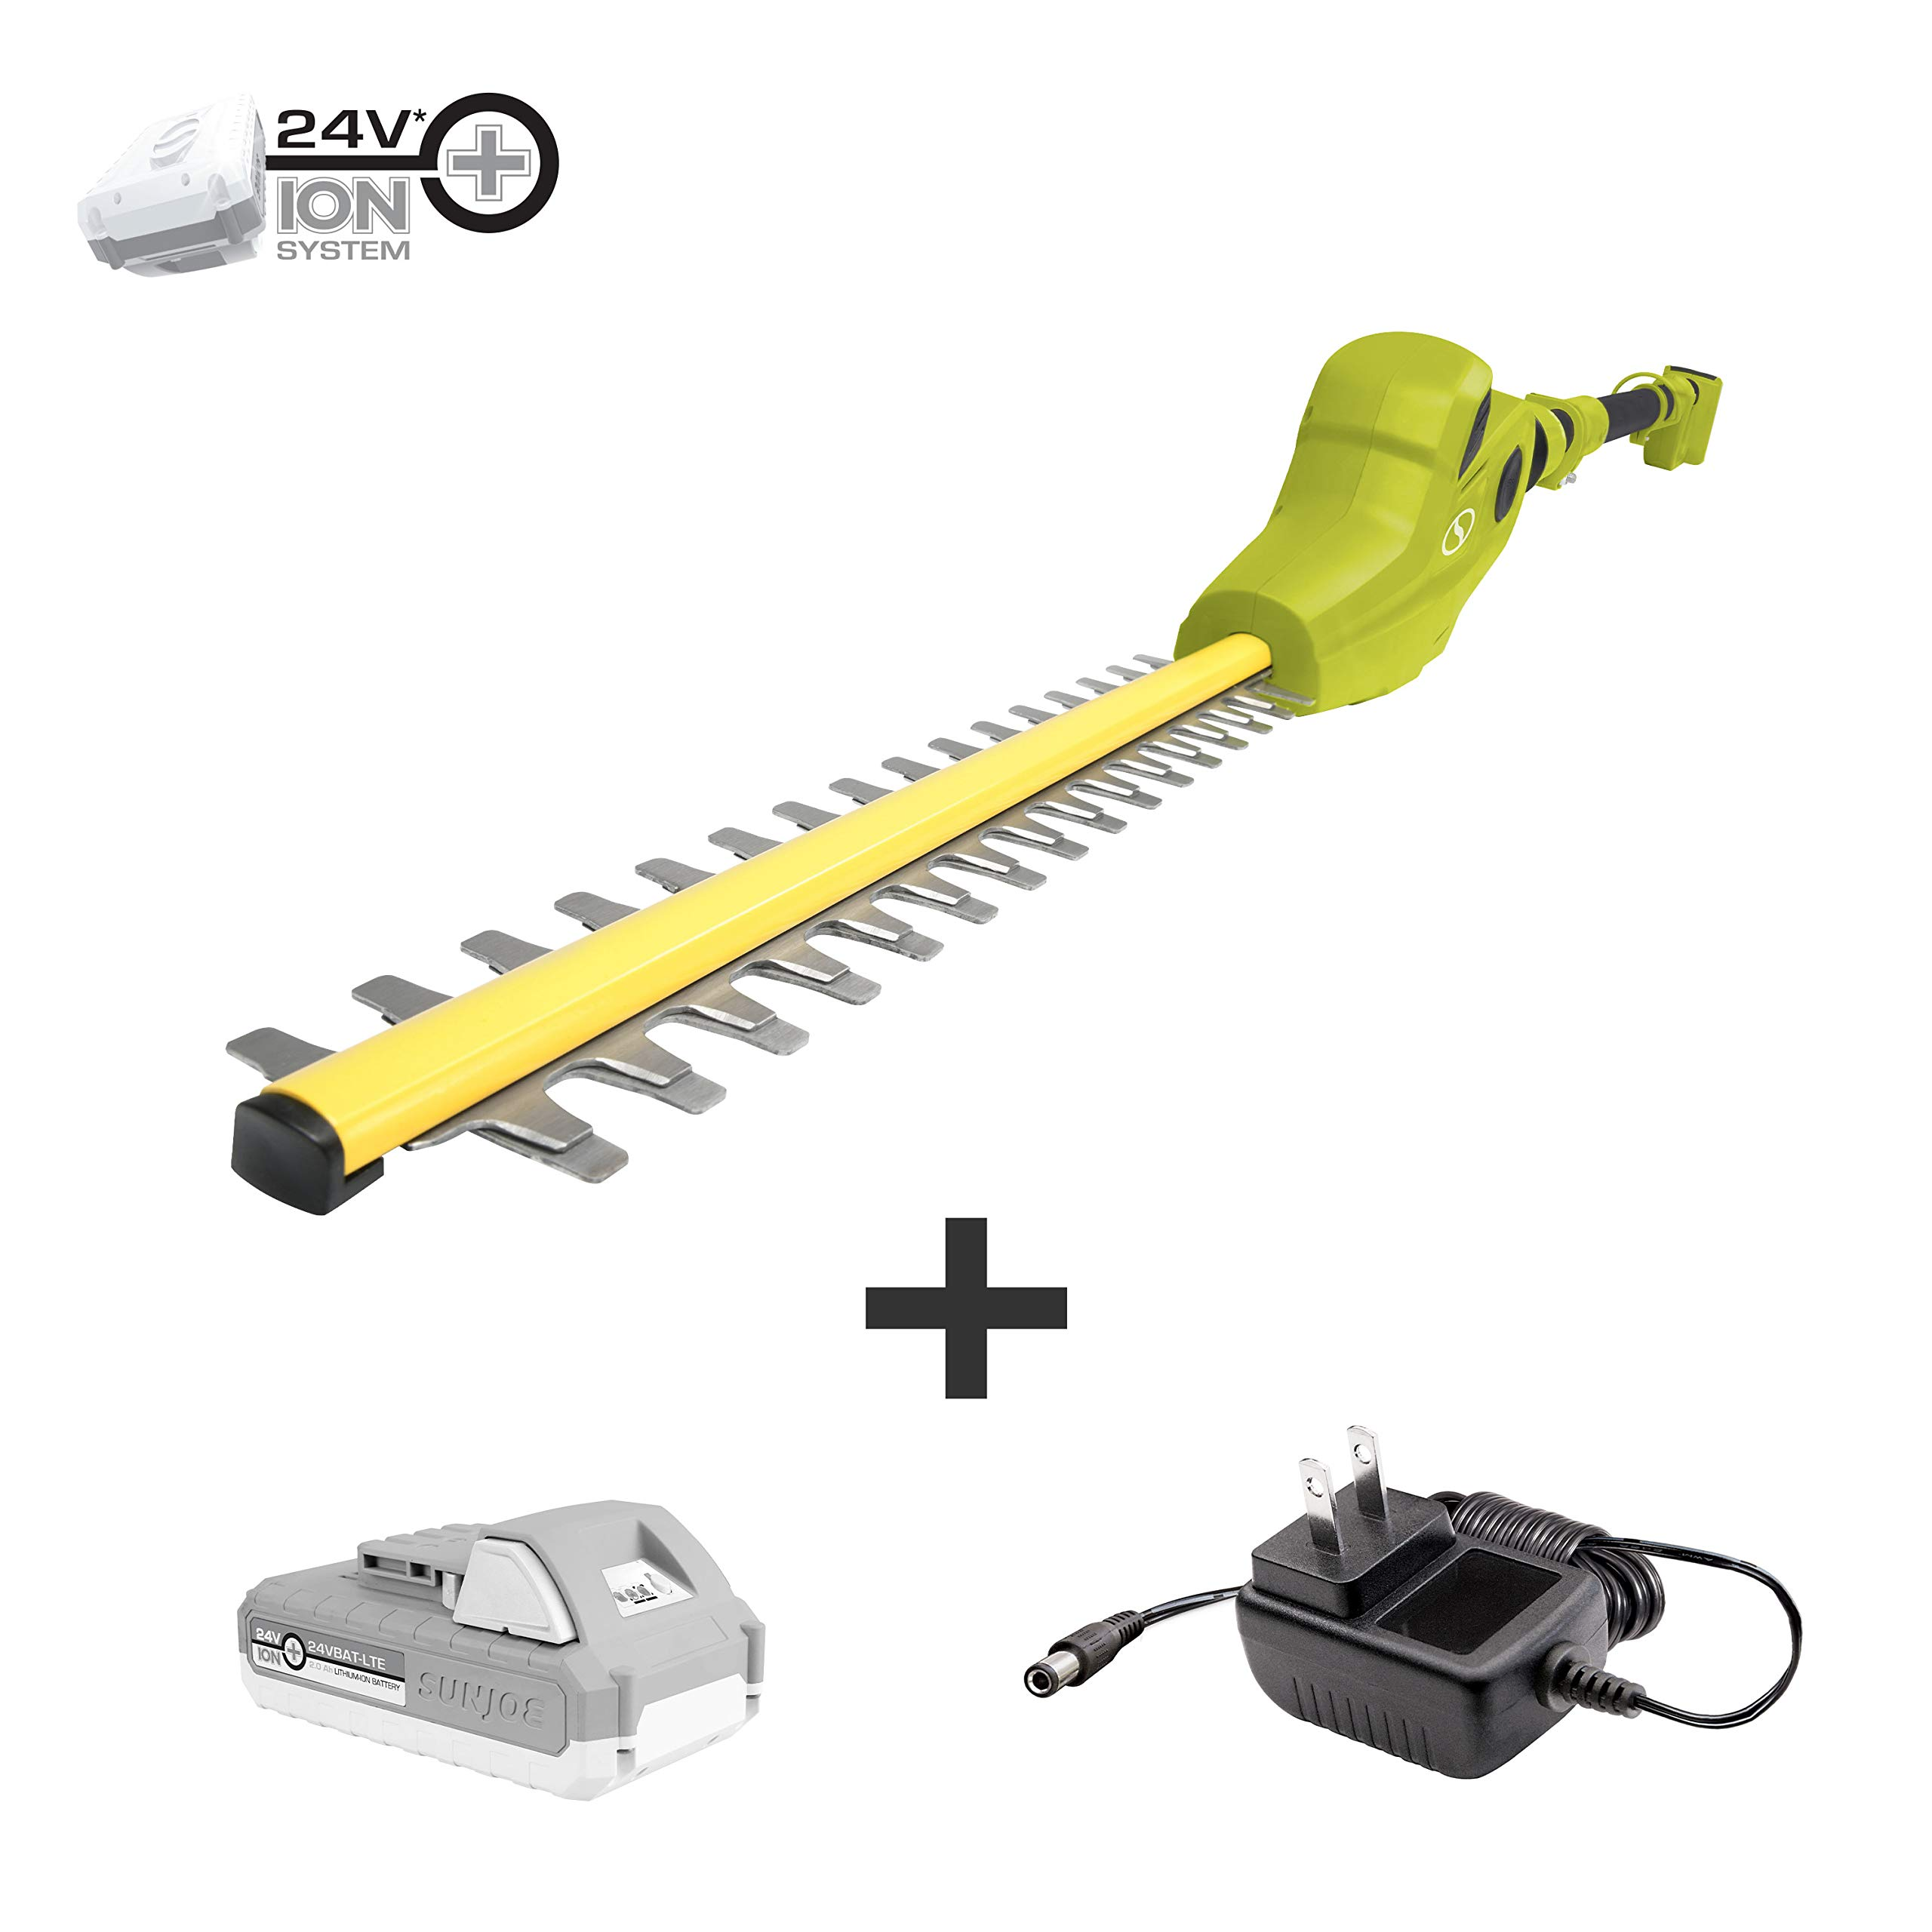 Sun Joe 24V-PHT17-LTE Cordless Telescoping Dual-Action Pole Hedge Trimmer, Kit (w/2.0-Ah Battery + Quick Charger)